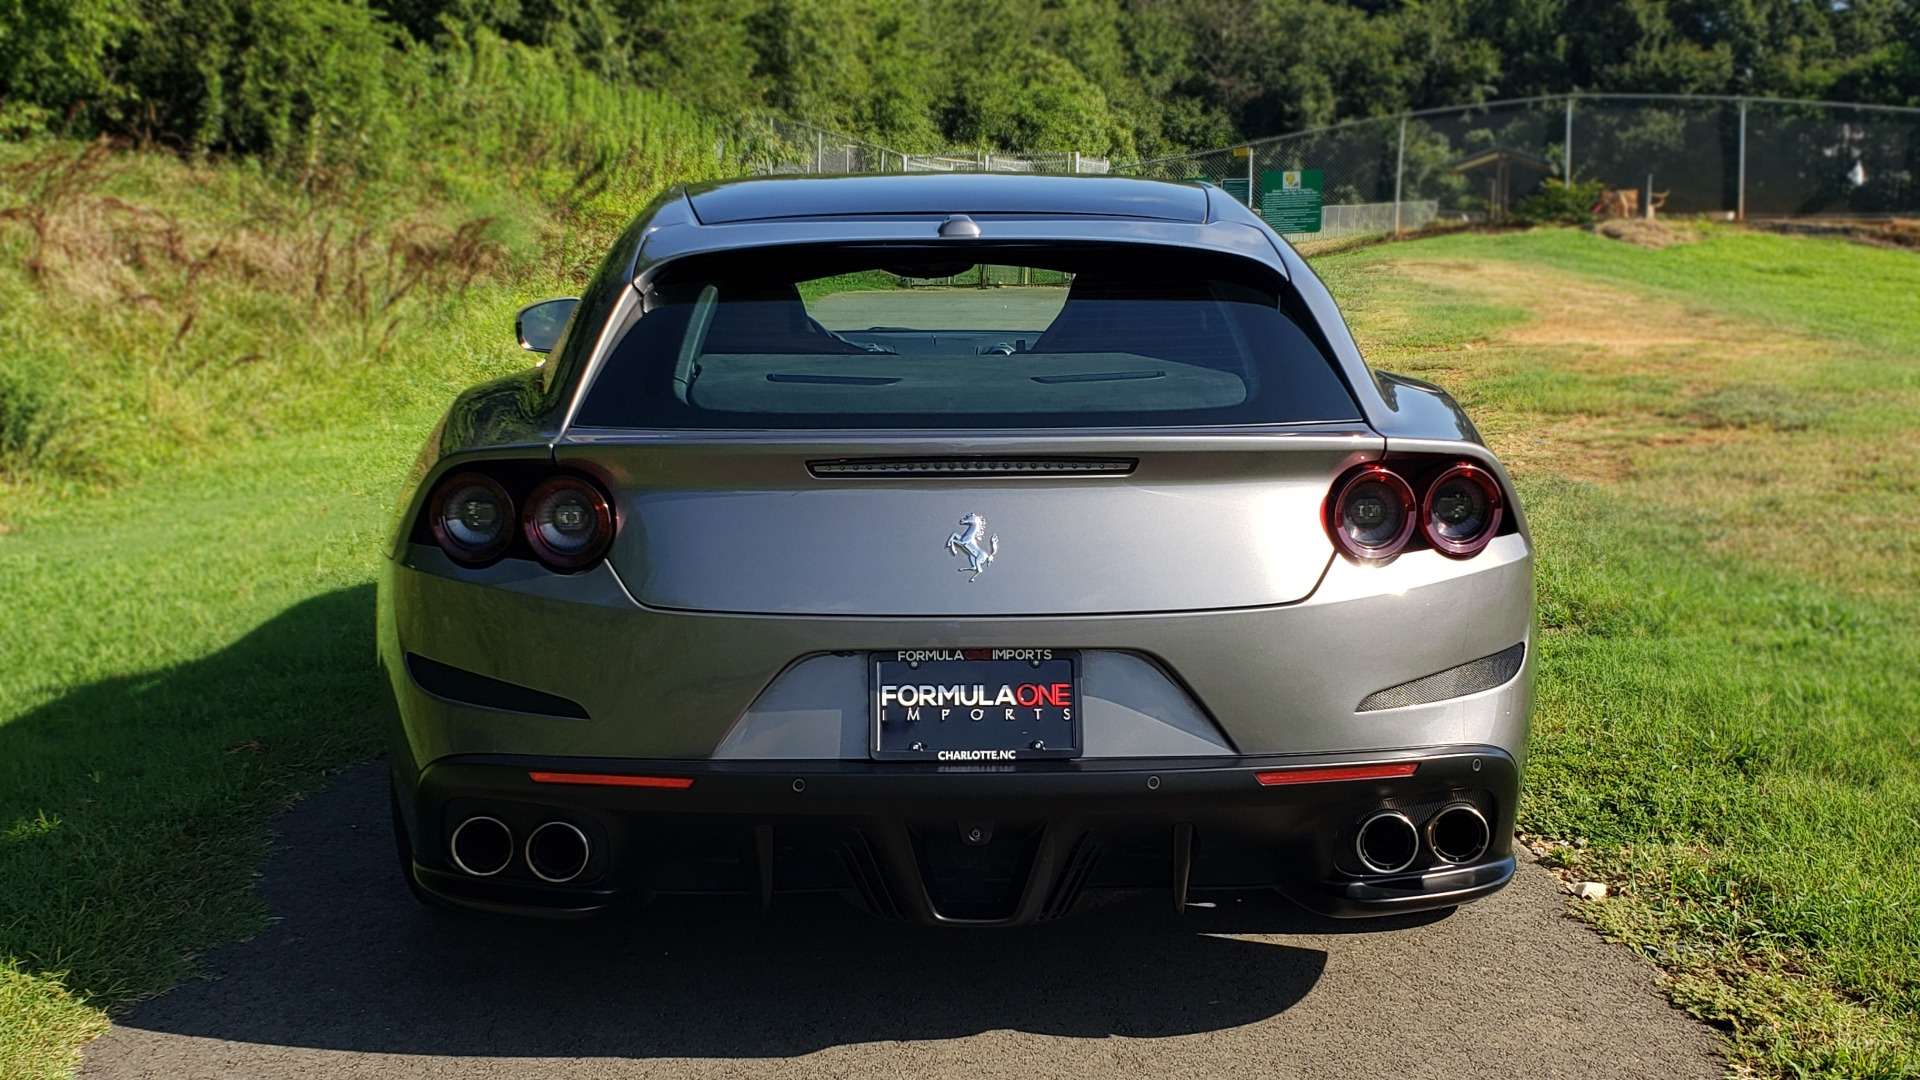 Used 2017 Ferrari GTC4 LUSSO AWD / PANO-ROOF / APPLE CAR PLAY / SUSP LIFT / JBL SOUND for sale $188,999 at Formula Imports in Charlotte NC 28227 21